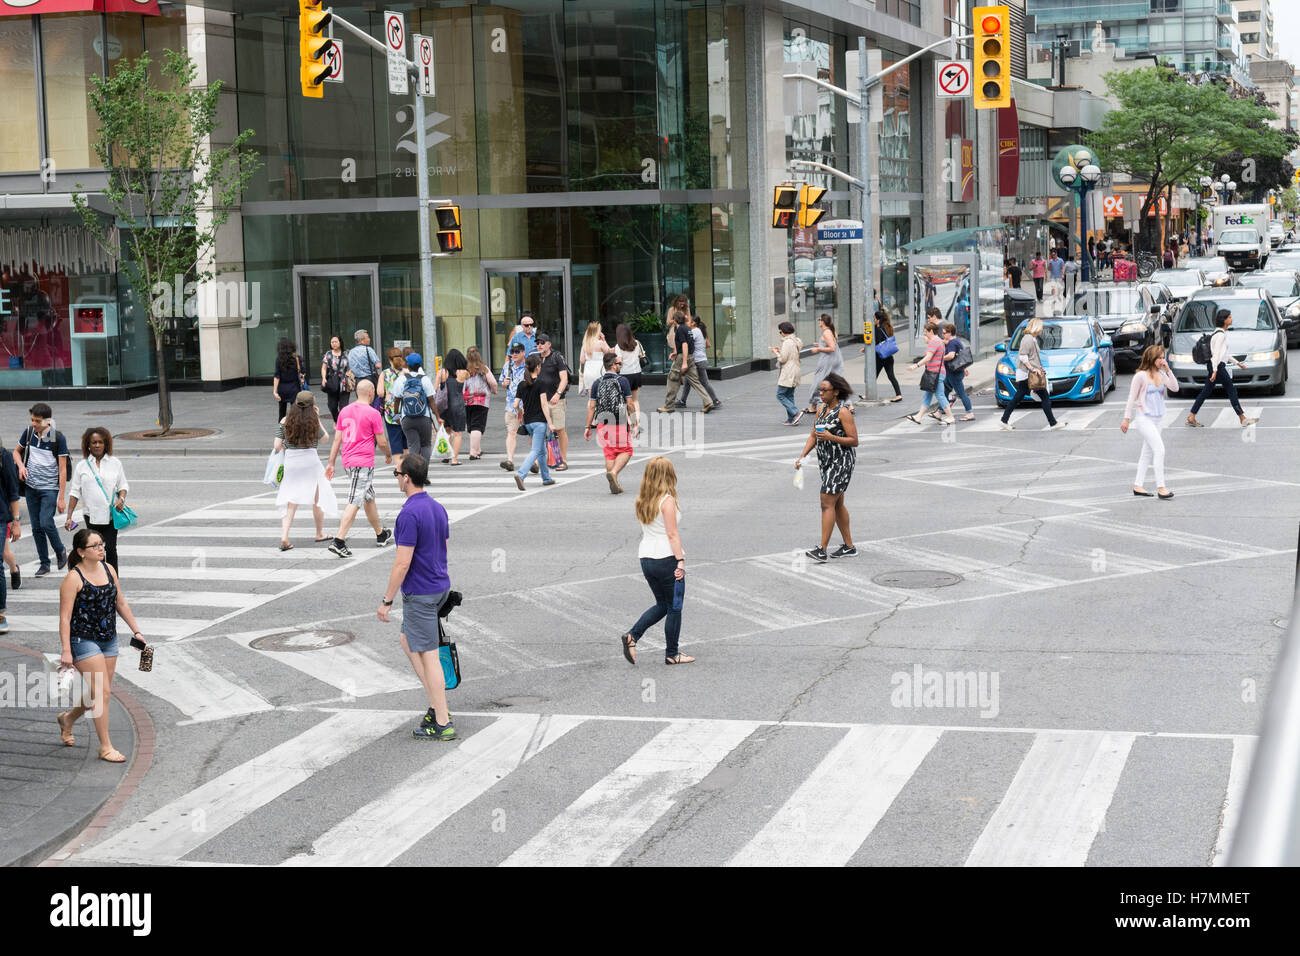 Bloor and Yonge Scramble intersection - pedestrian scramble crossing - Toronto, Canada - Stock Image